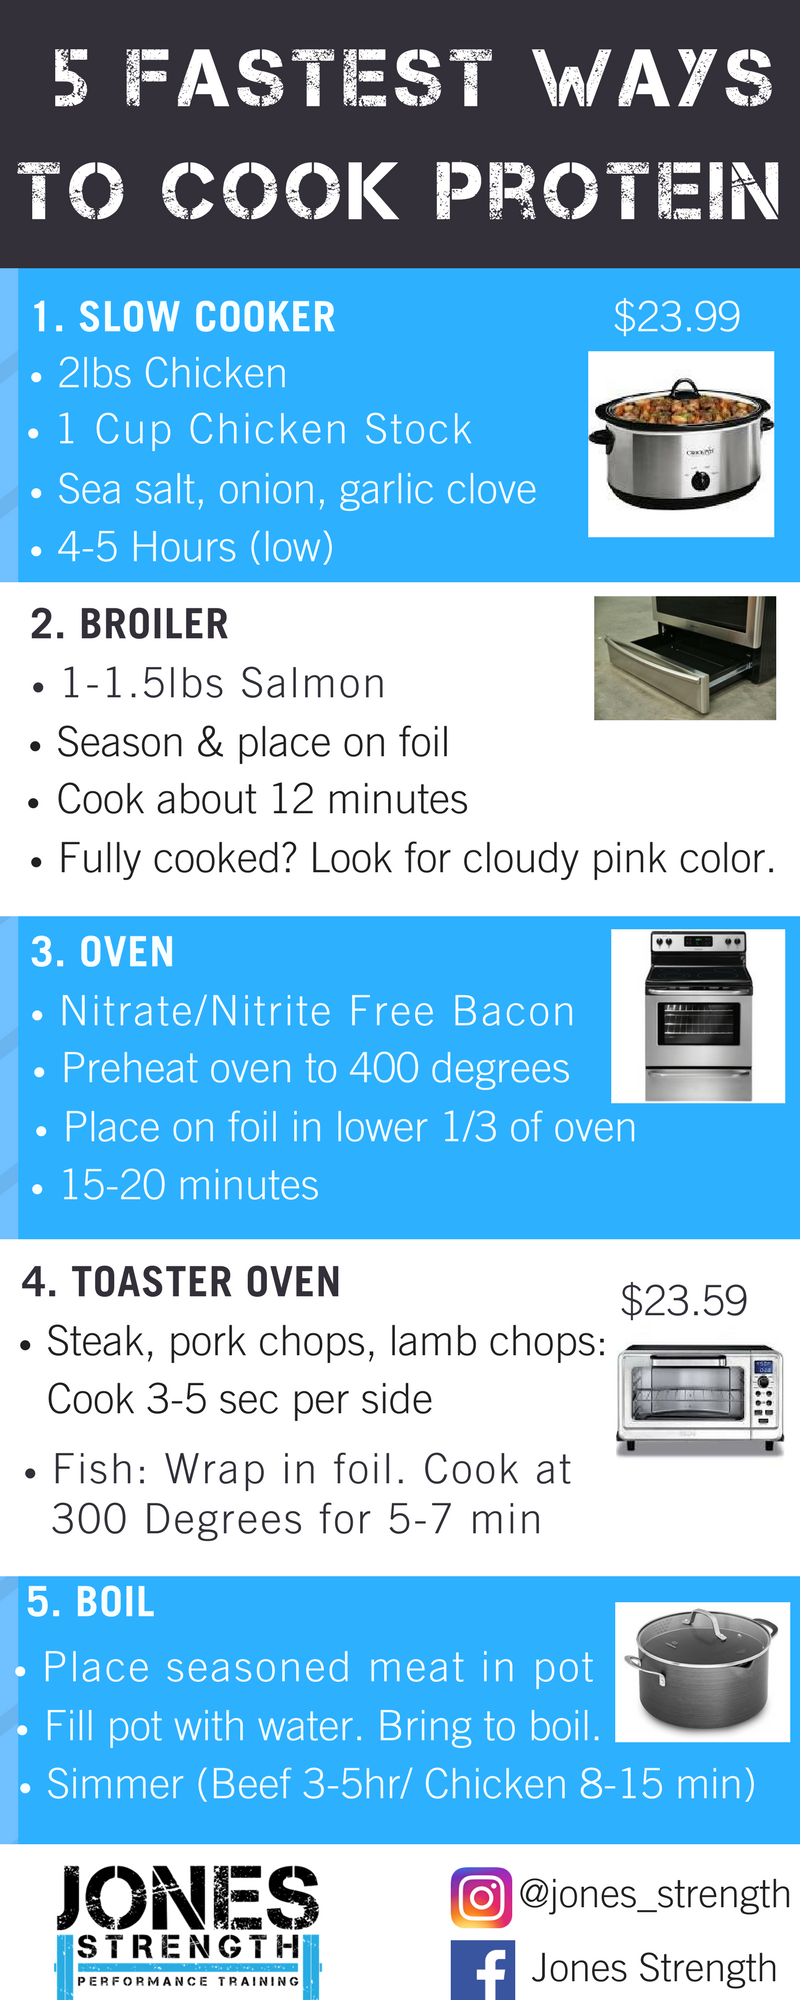 5 fastest ways to cook protein.png